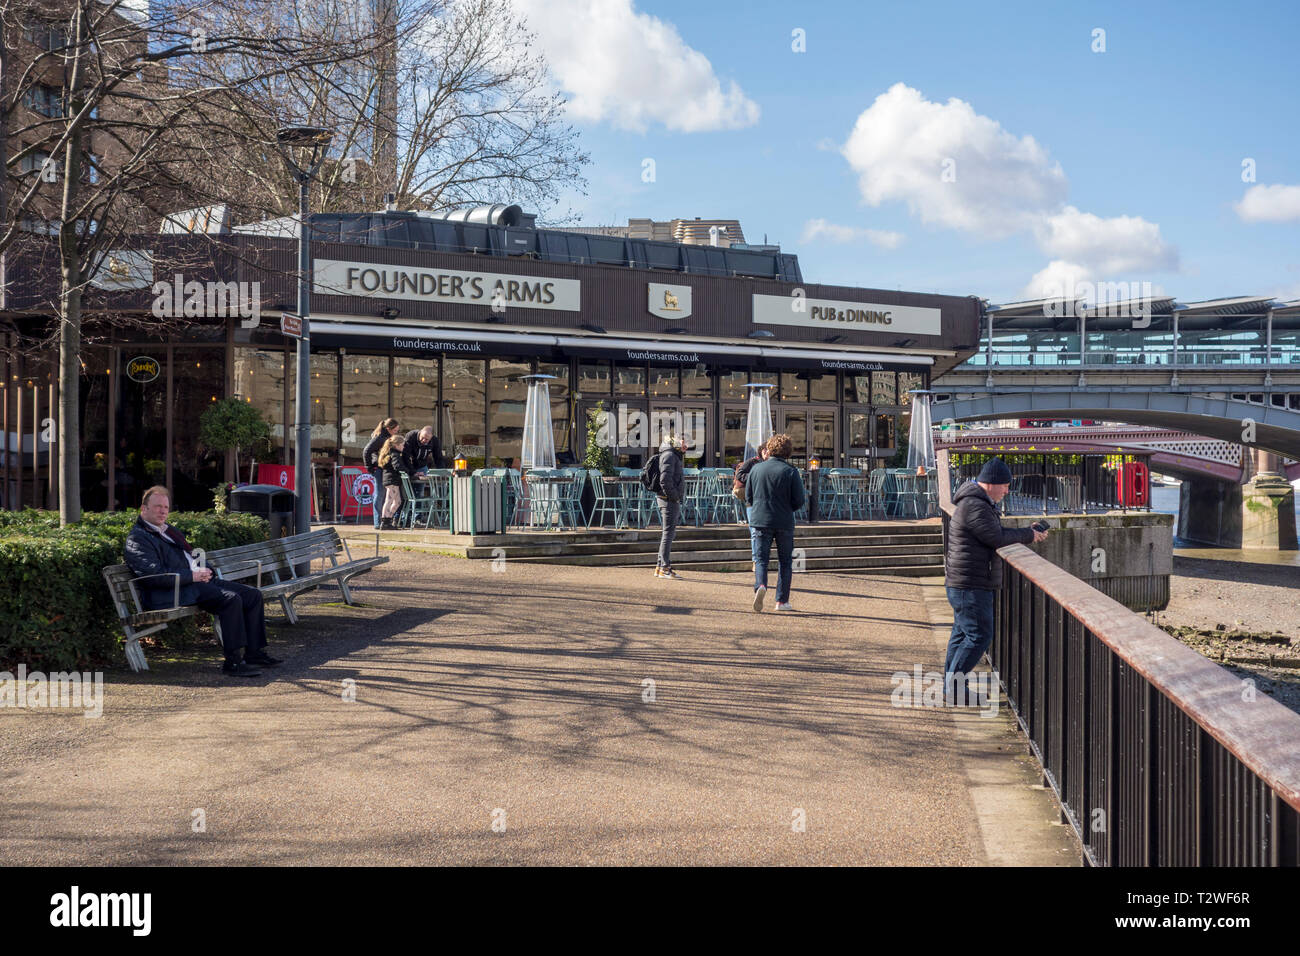 The Founder's Arms, Bankside, Southwark, South Bank, London, UK - Stock Image